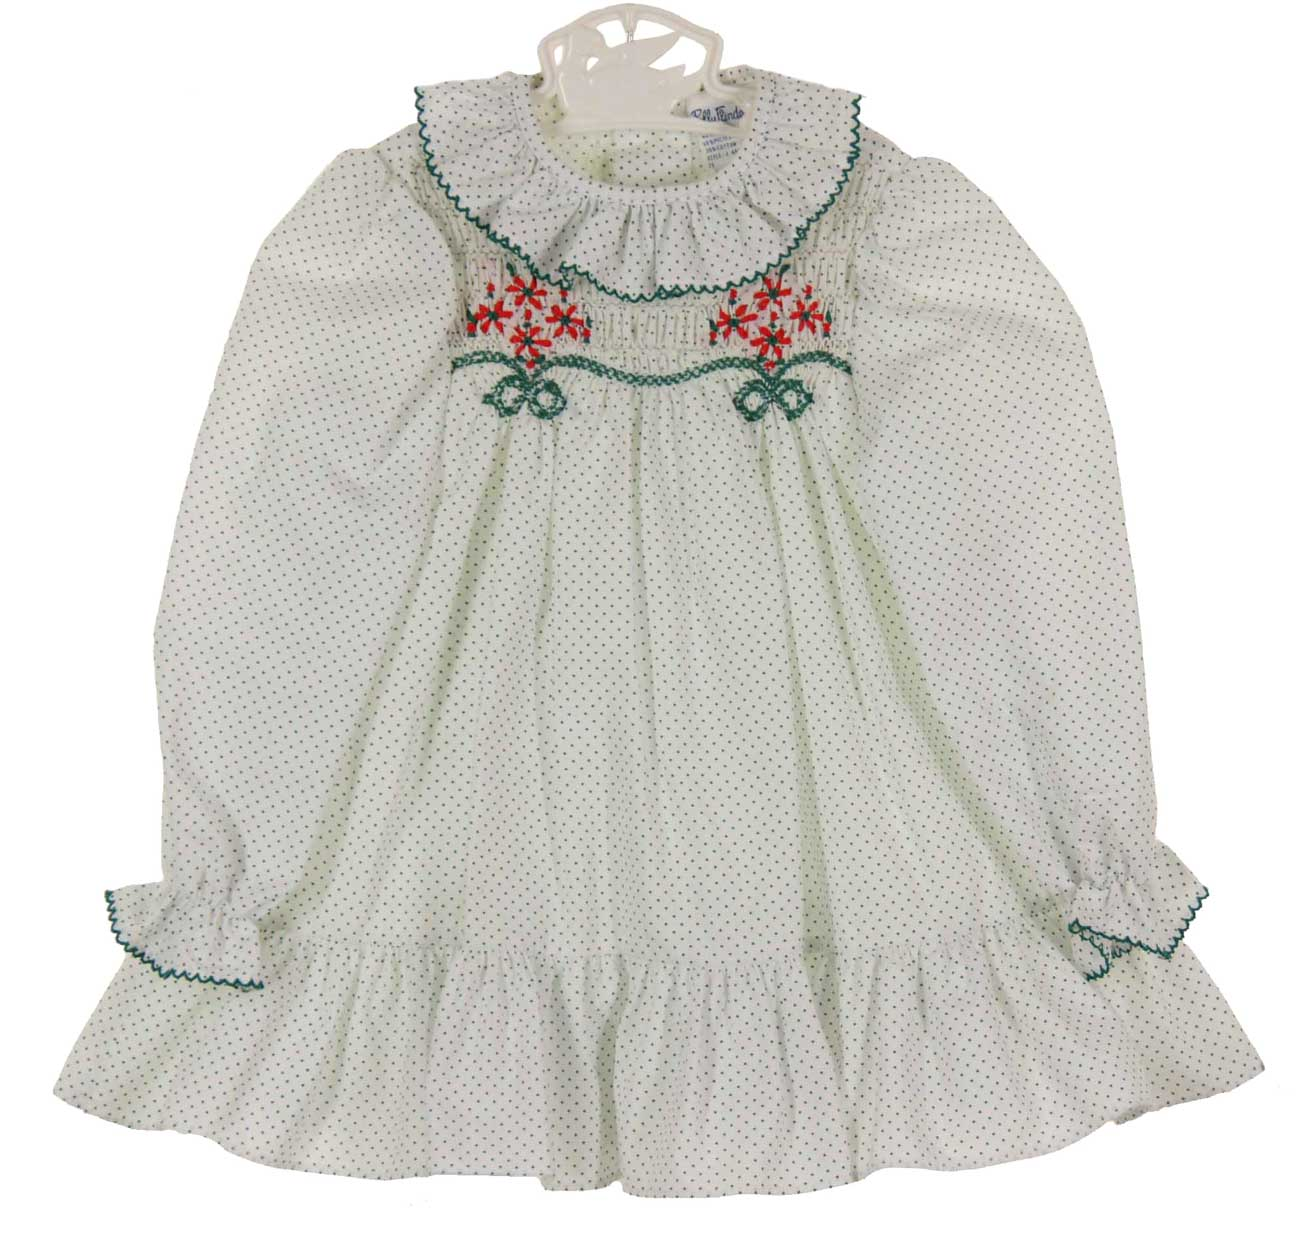 Polly Flinders White Dotted Smocked Dress With Red Flowerspolly